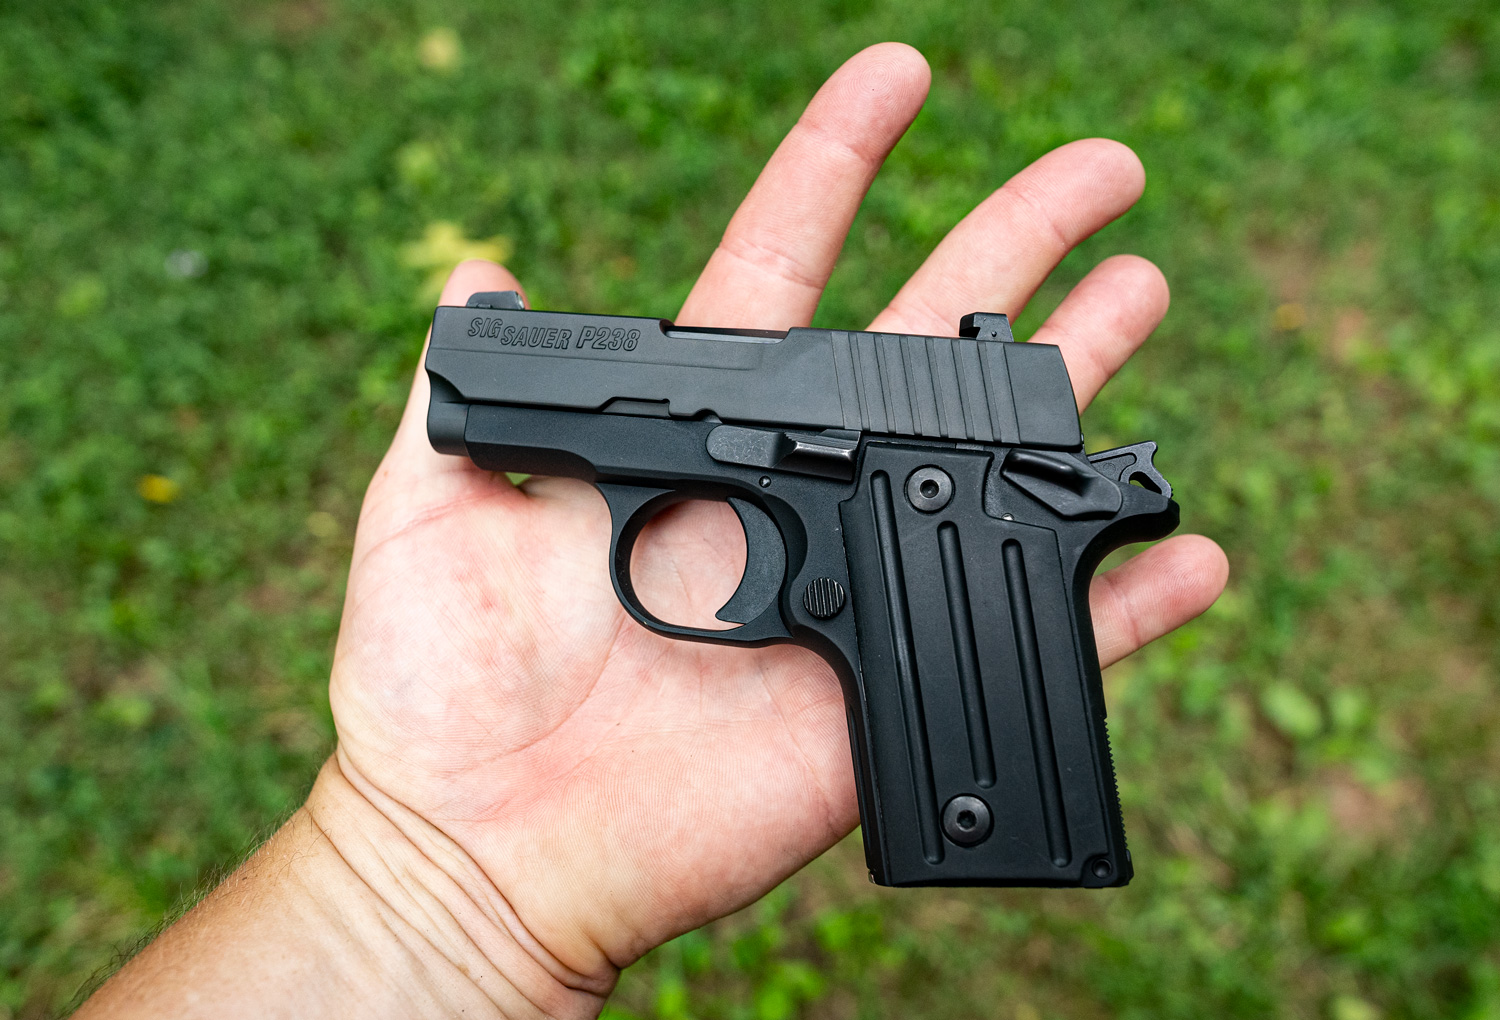 a common first pistol in the palm of a shooter's hand.